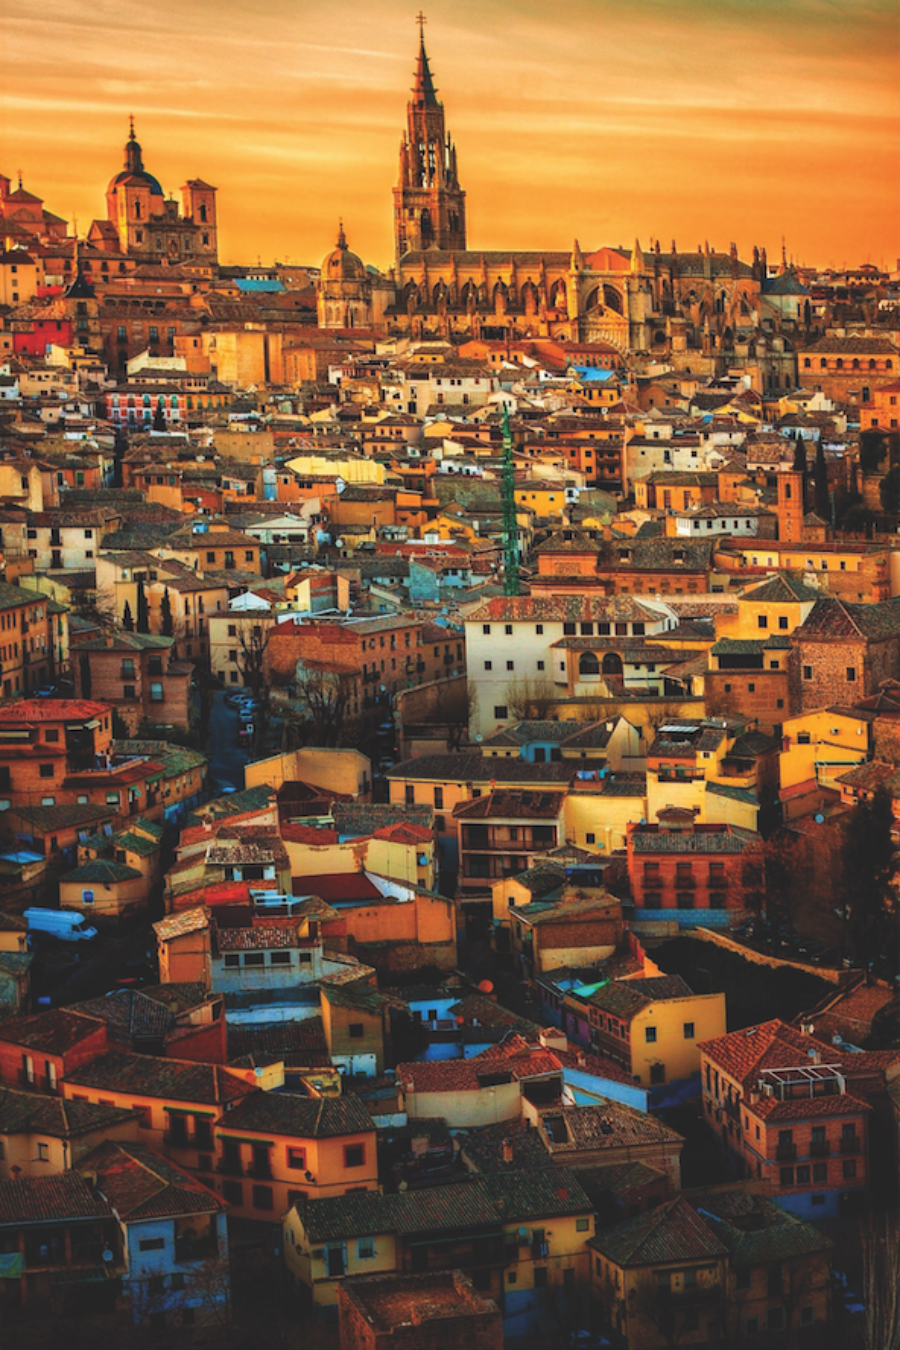 A picture overlooking Madrid, Spain under a bright orange sky.